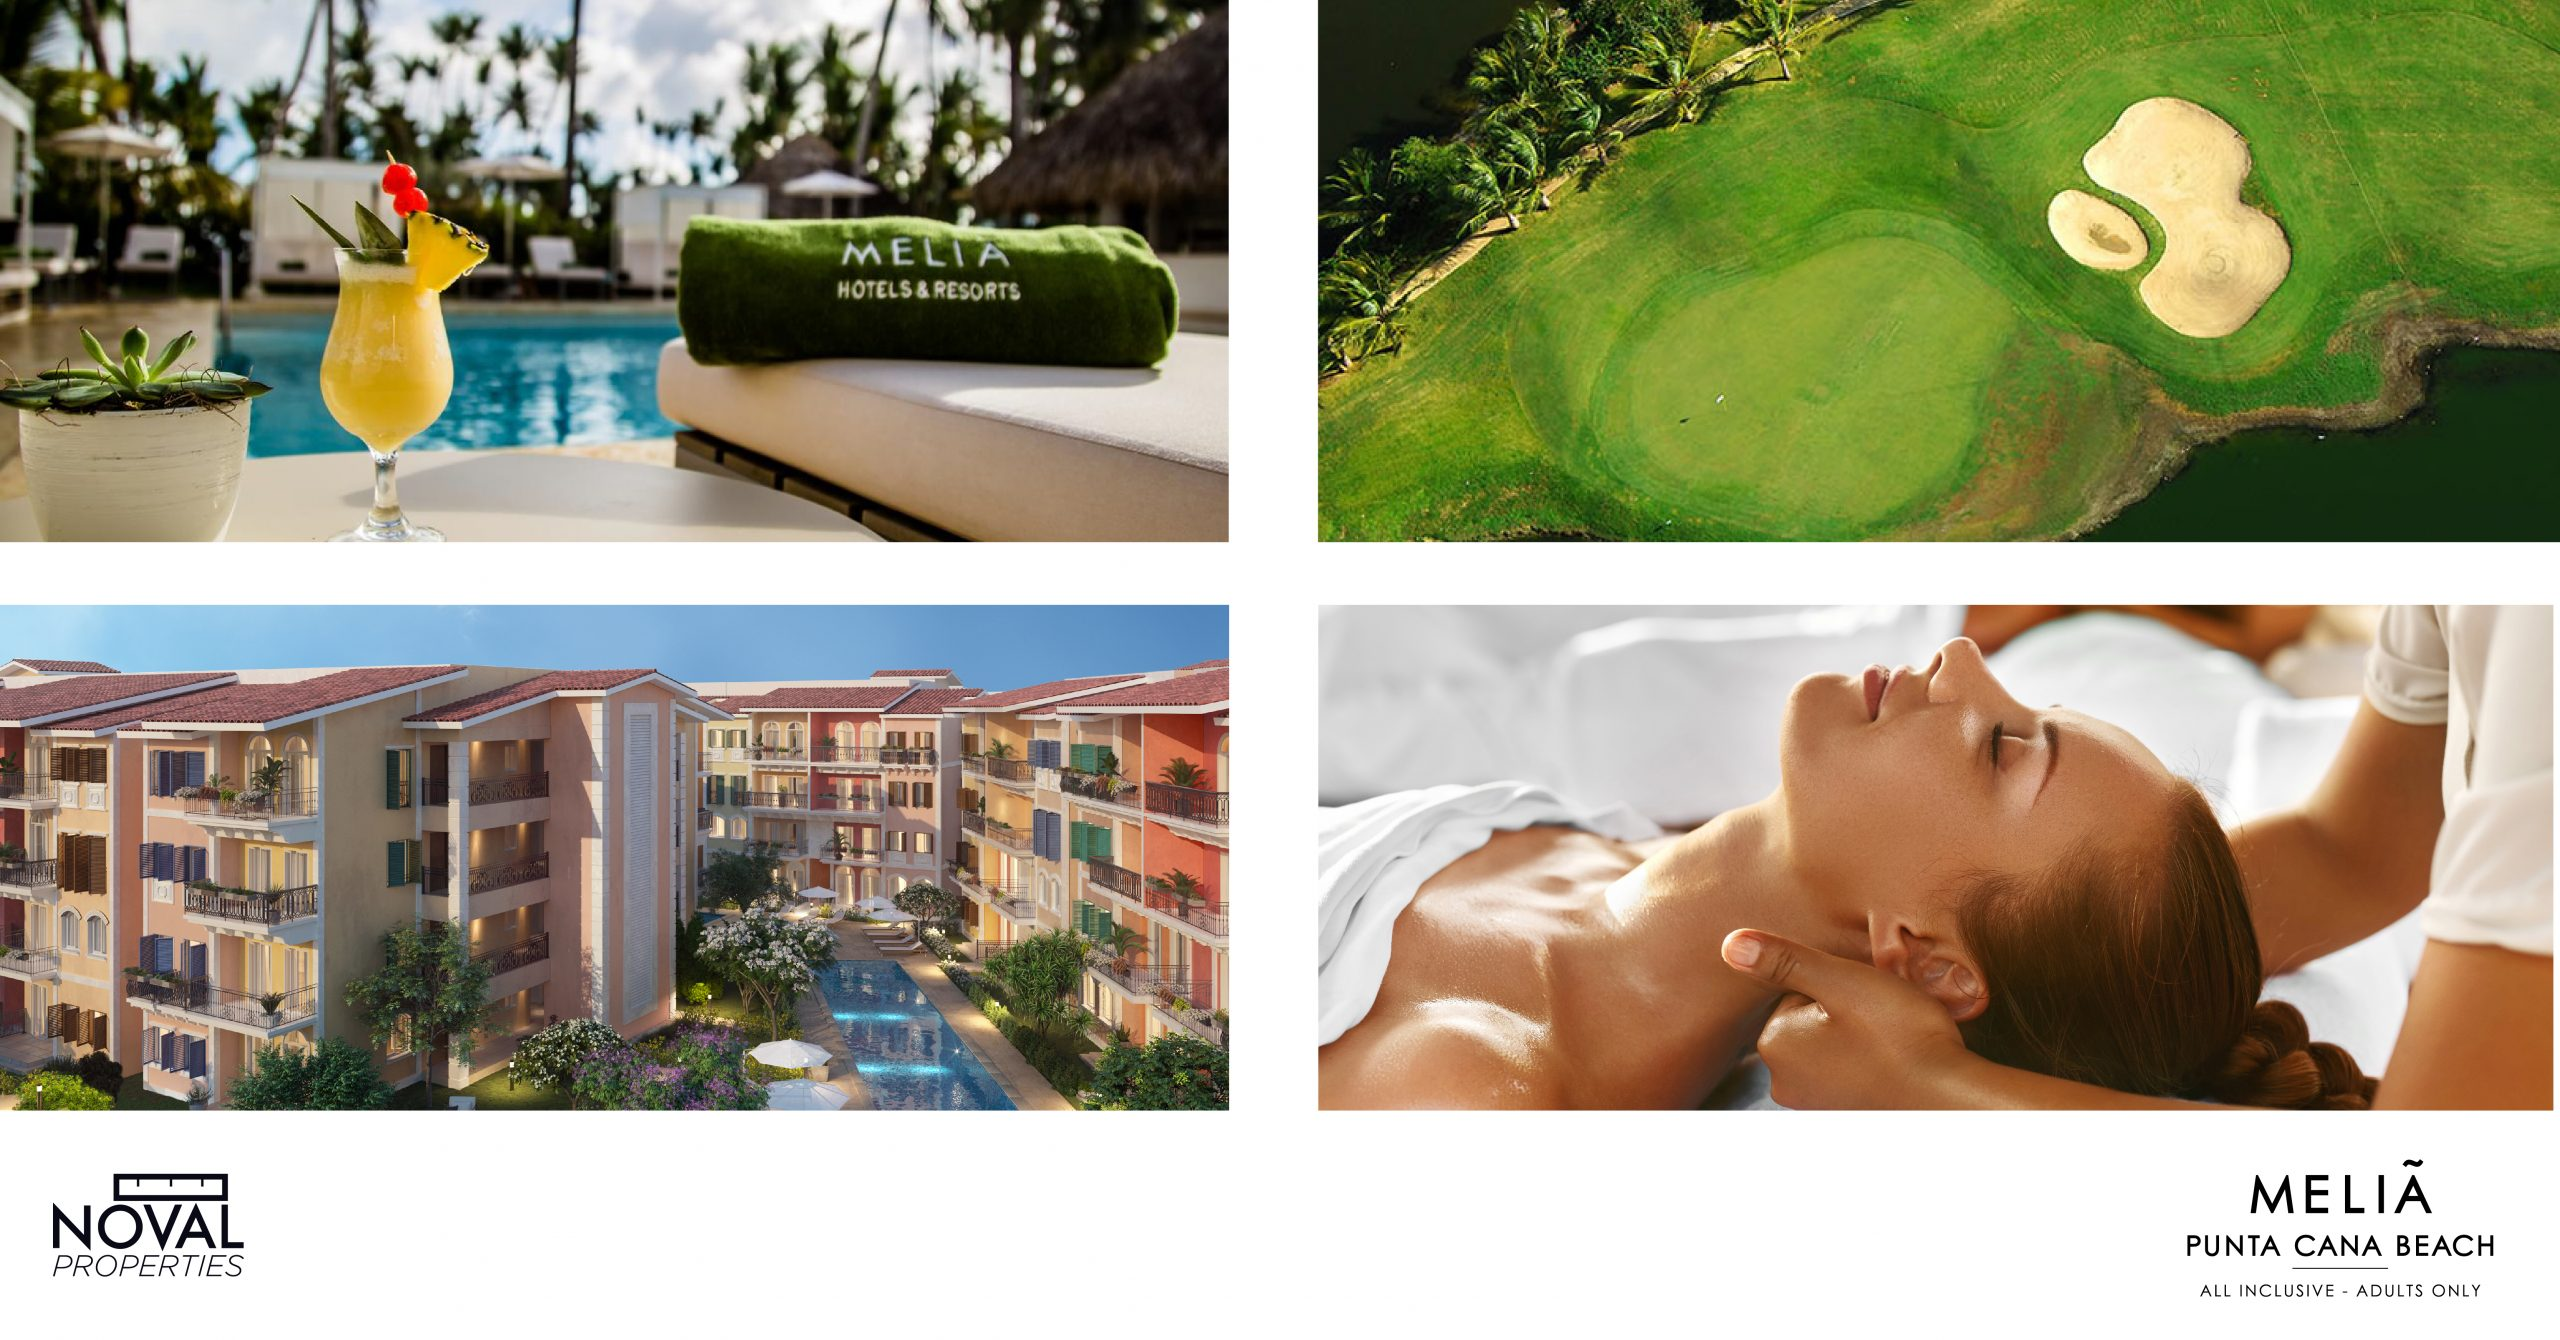 Enter to Win a $5,000 Punta Cana Melia Golf Discovery Package